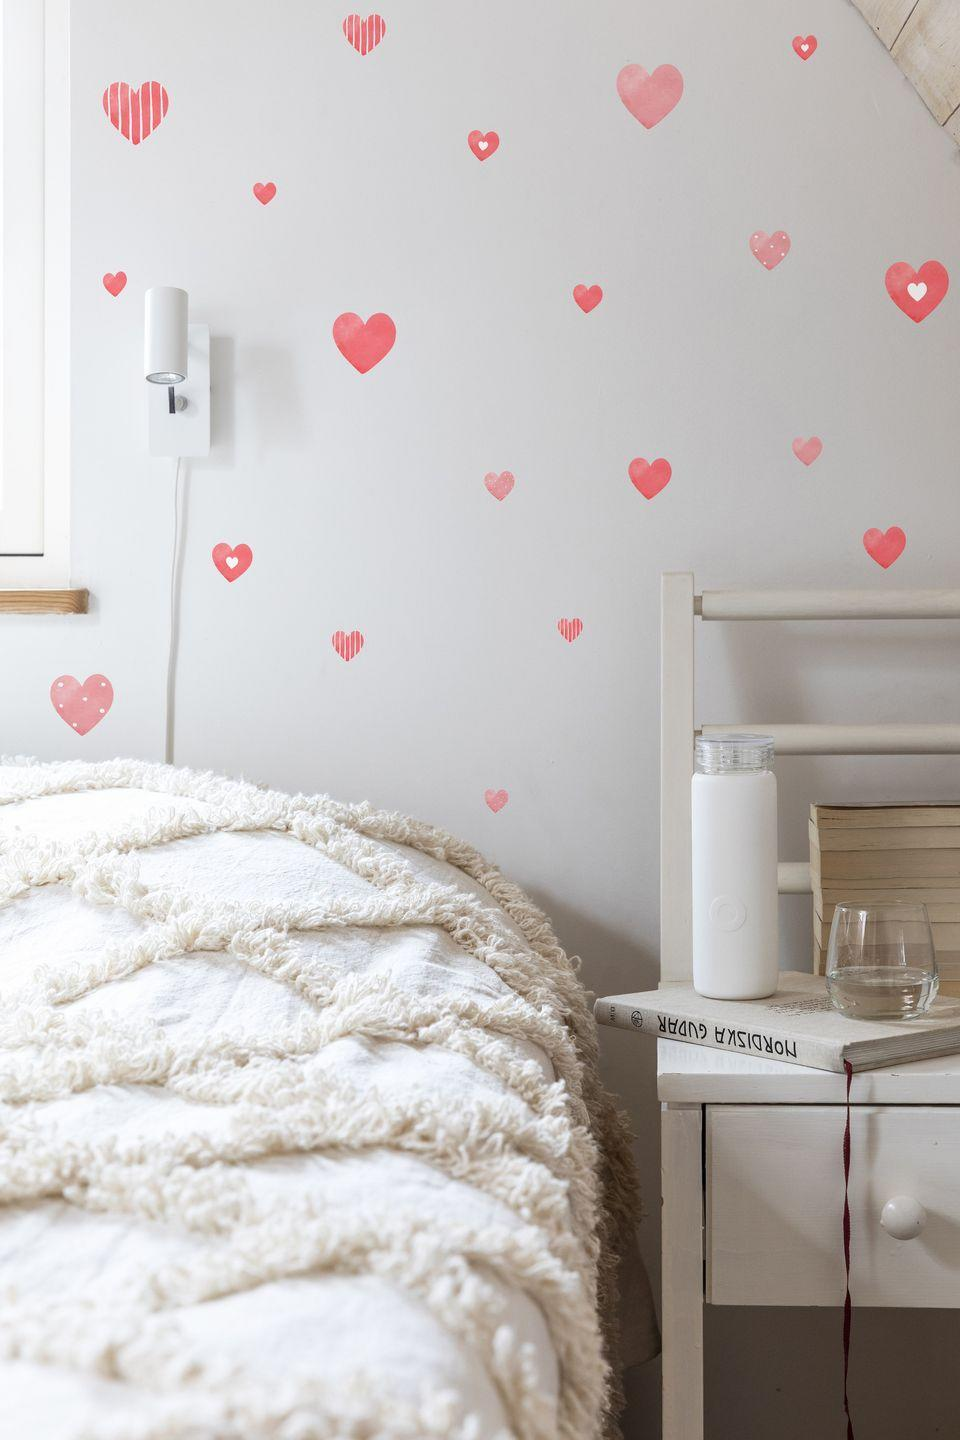 """<p>A really easy way to transform bland walls is with red heart stickers, or similar. It's a great way to create an instant feature wall. These stickers can be positioned and repositioned many times, without leaving any residue behind on wall surfaces.</p><p>Pictured: Reusable Heart Wall Decals, <a href=""""https://www.stickers4walls.co.uk/Reusable_Valentines_Heart_Wall_Stickers/p1294546_20955380.aspx"""" rel=""""nofollow noopener"""" target=""""_blank"""" data-ylk=""""slk:Stickers4Walls"""" class=""""link rapid-noclick-resp"""">Stickers4Walls</a></p>"""